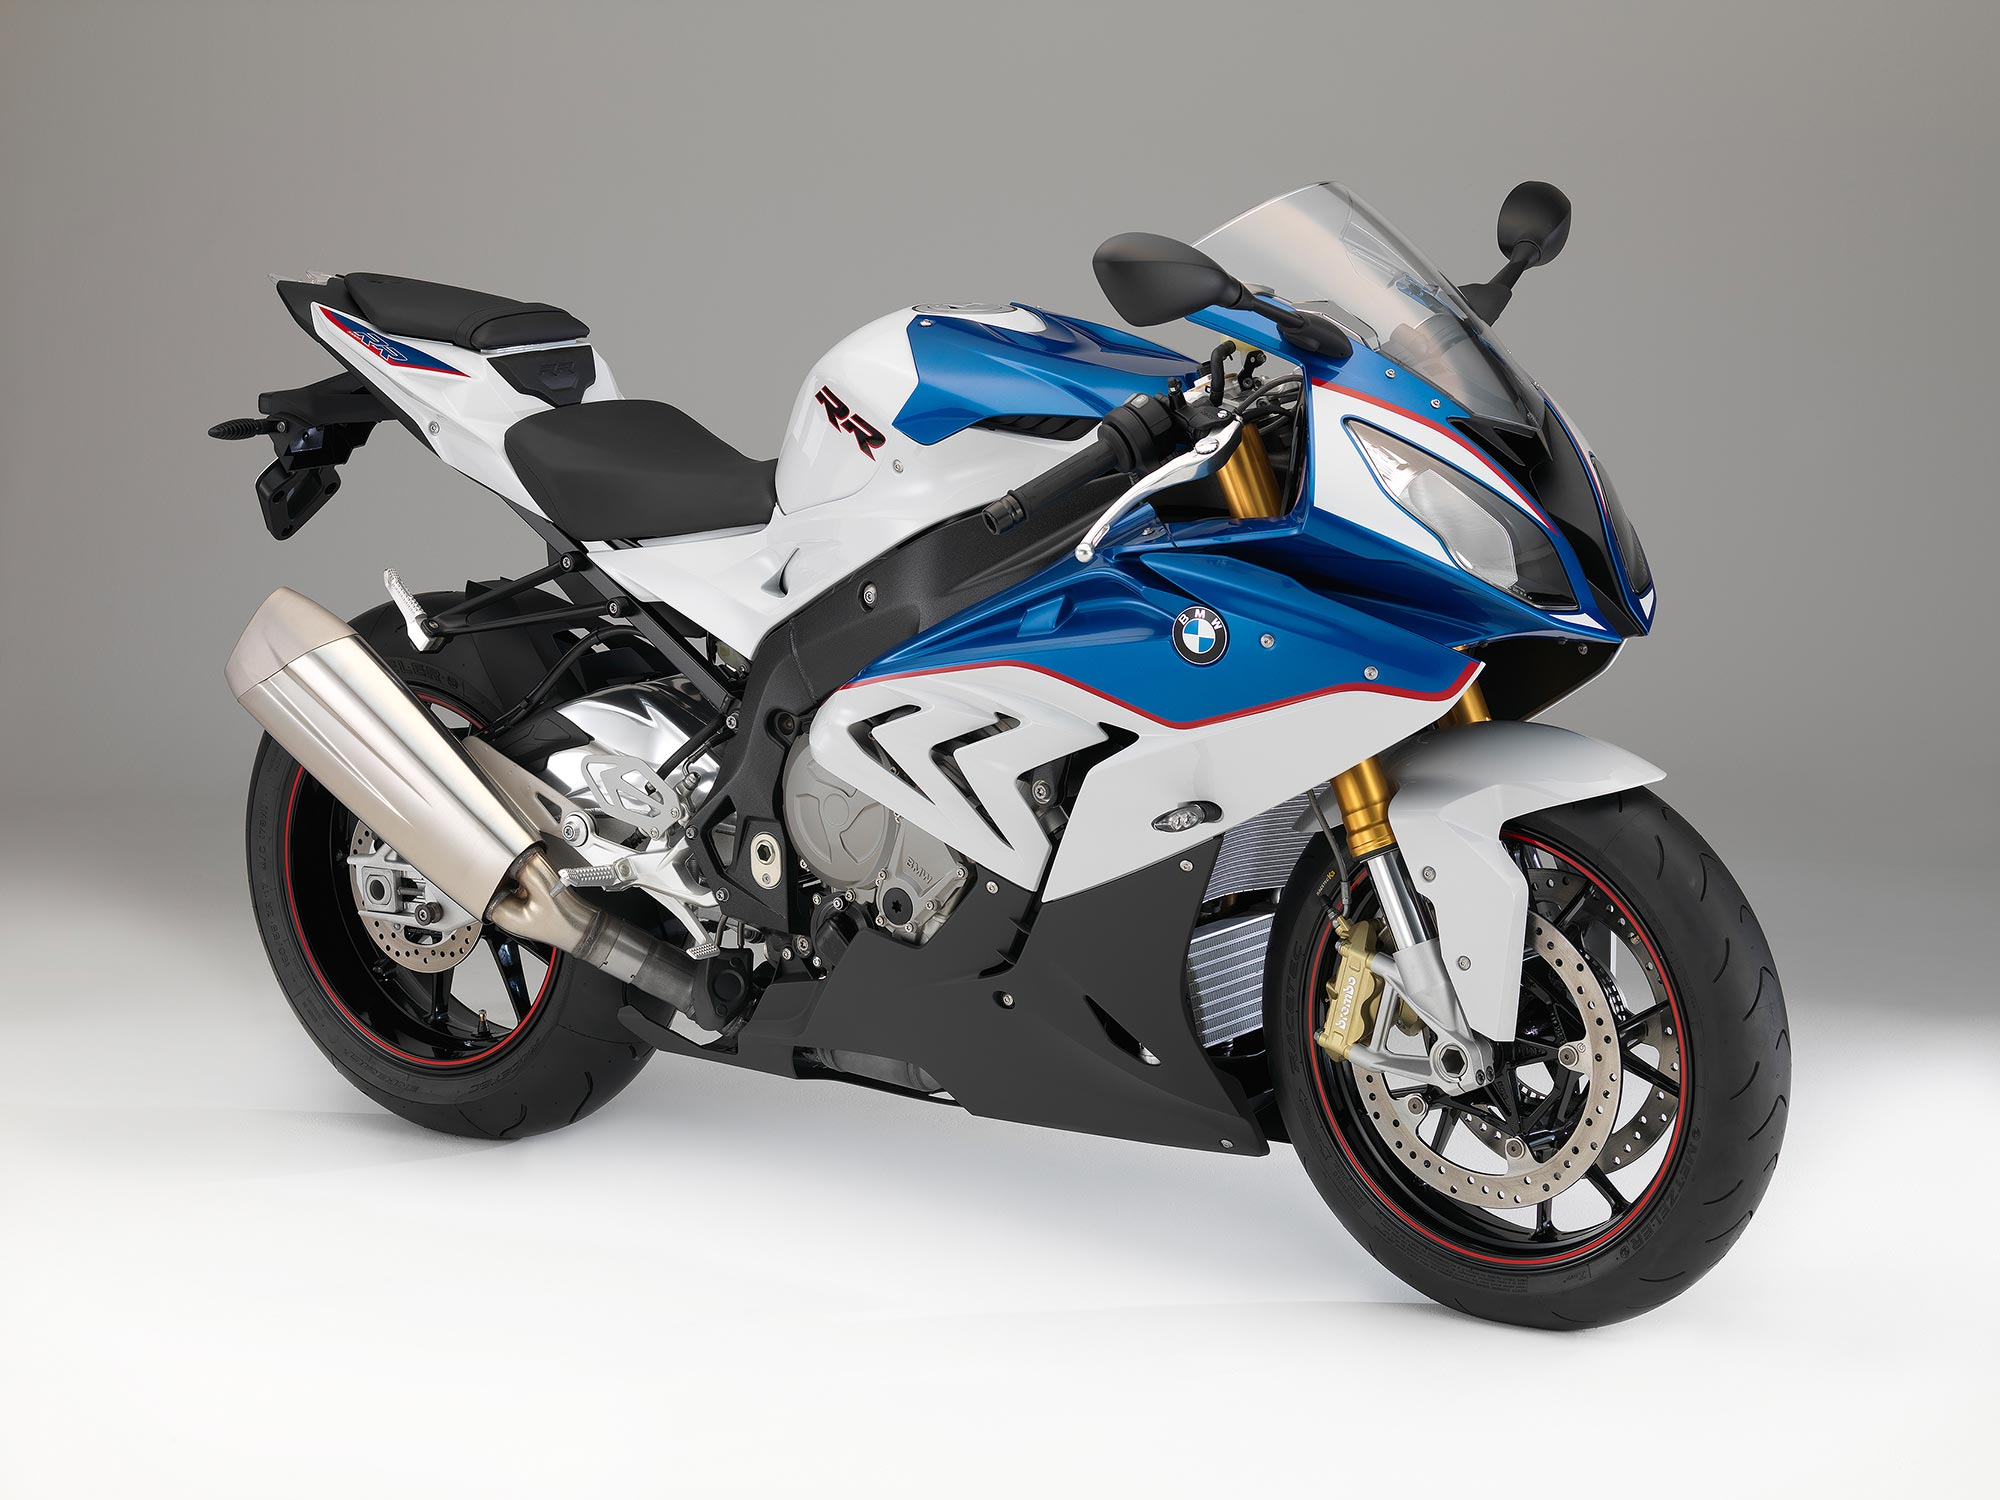 2015 bmw s1000rr 199hp new chassis cruise control asphalt rubber. Black Bedroom Furniture Sets. Home Design Ideas